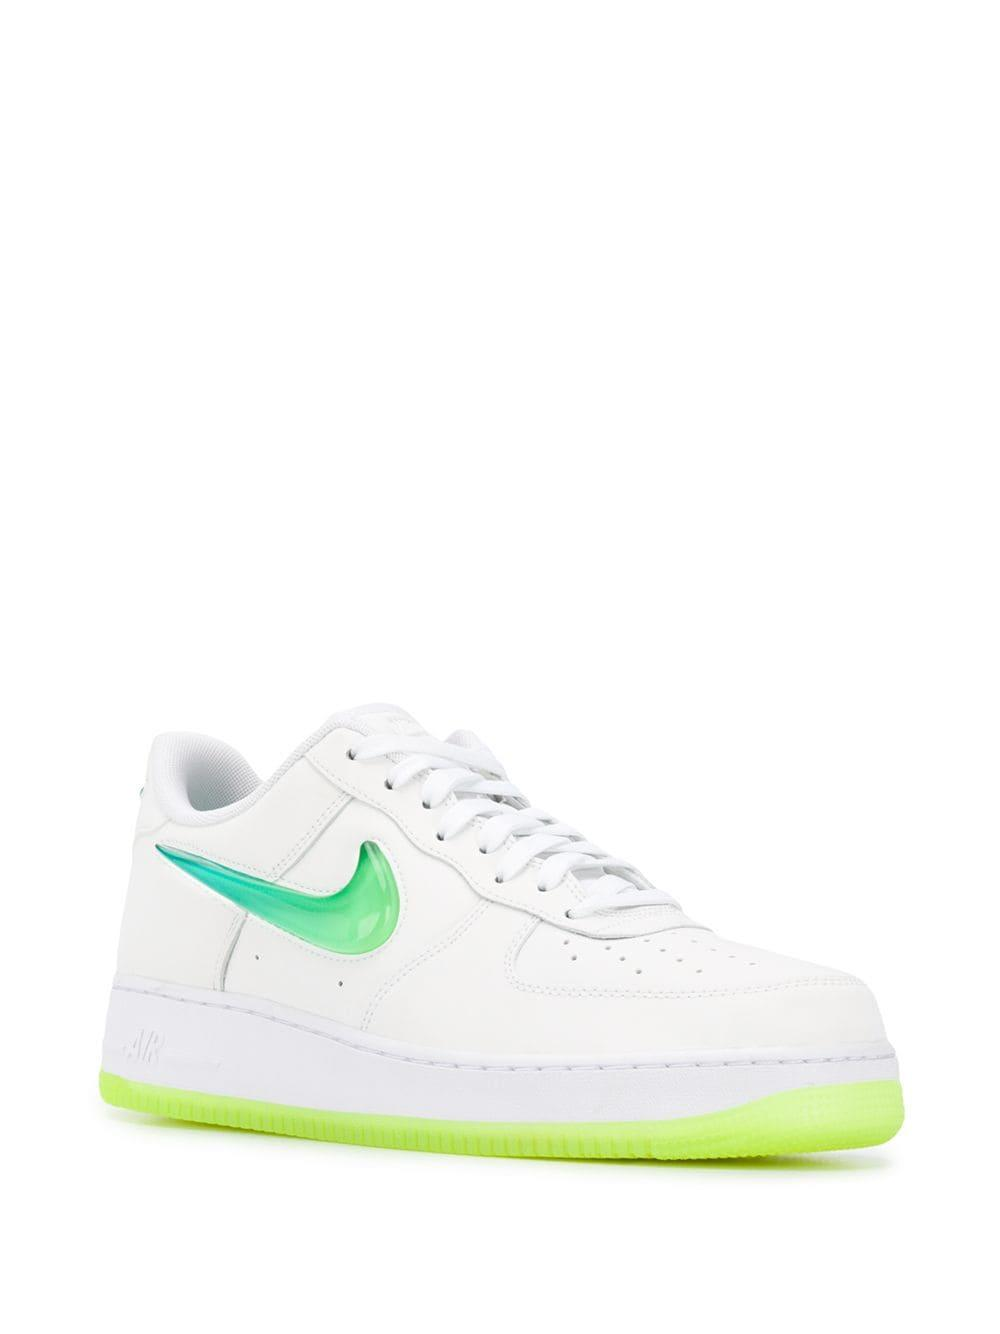 f86473d70dde7b Lyst - Nike Air Force 1 07 Premium Sneakers in White for Men - Save 7%